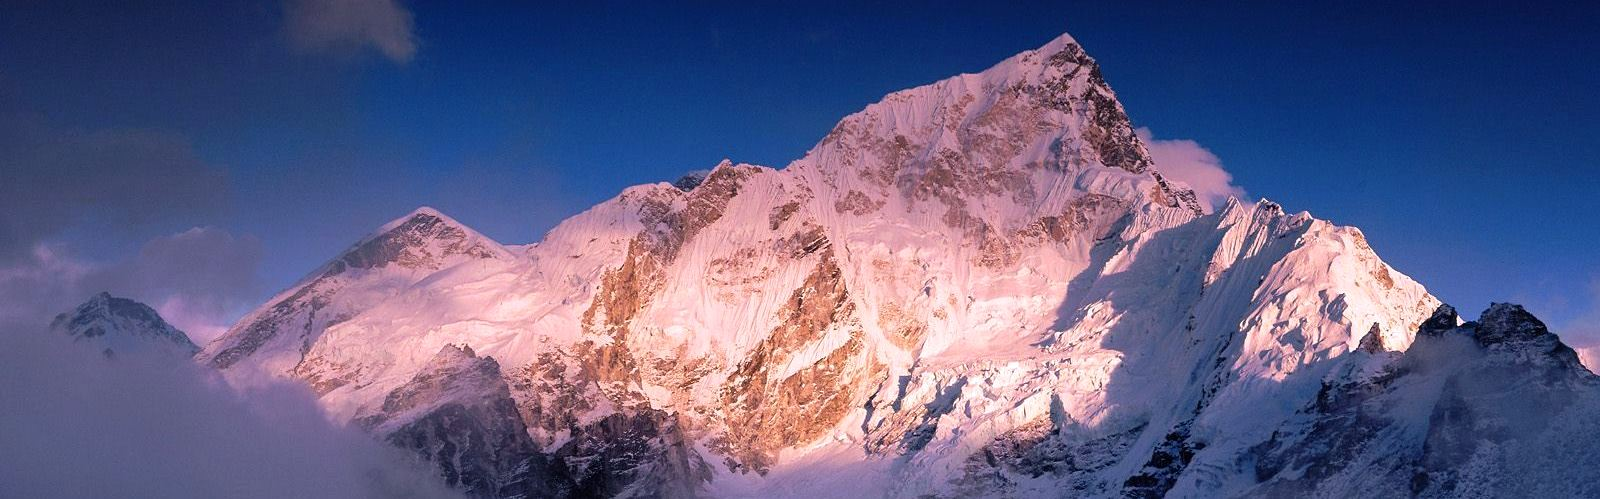 Gloring Mt. Everest